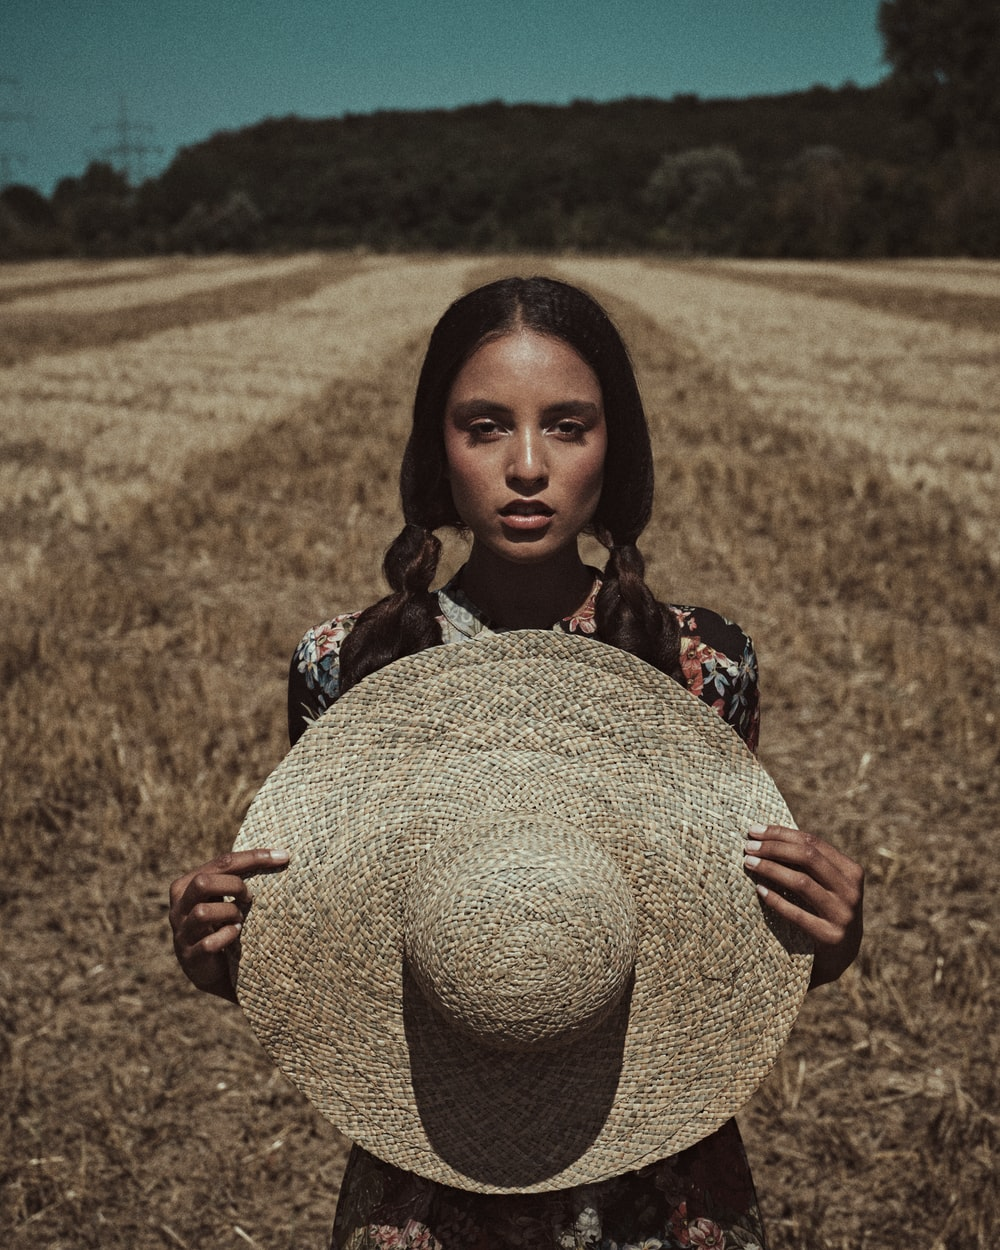 girl in brown hat on brown field during daytime